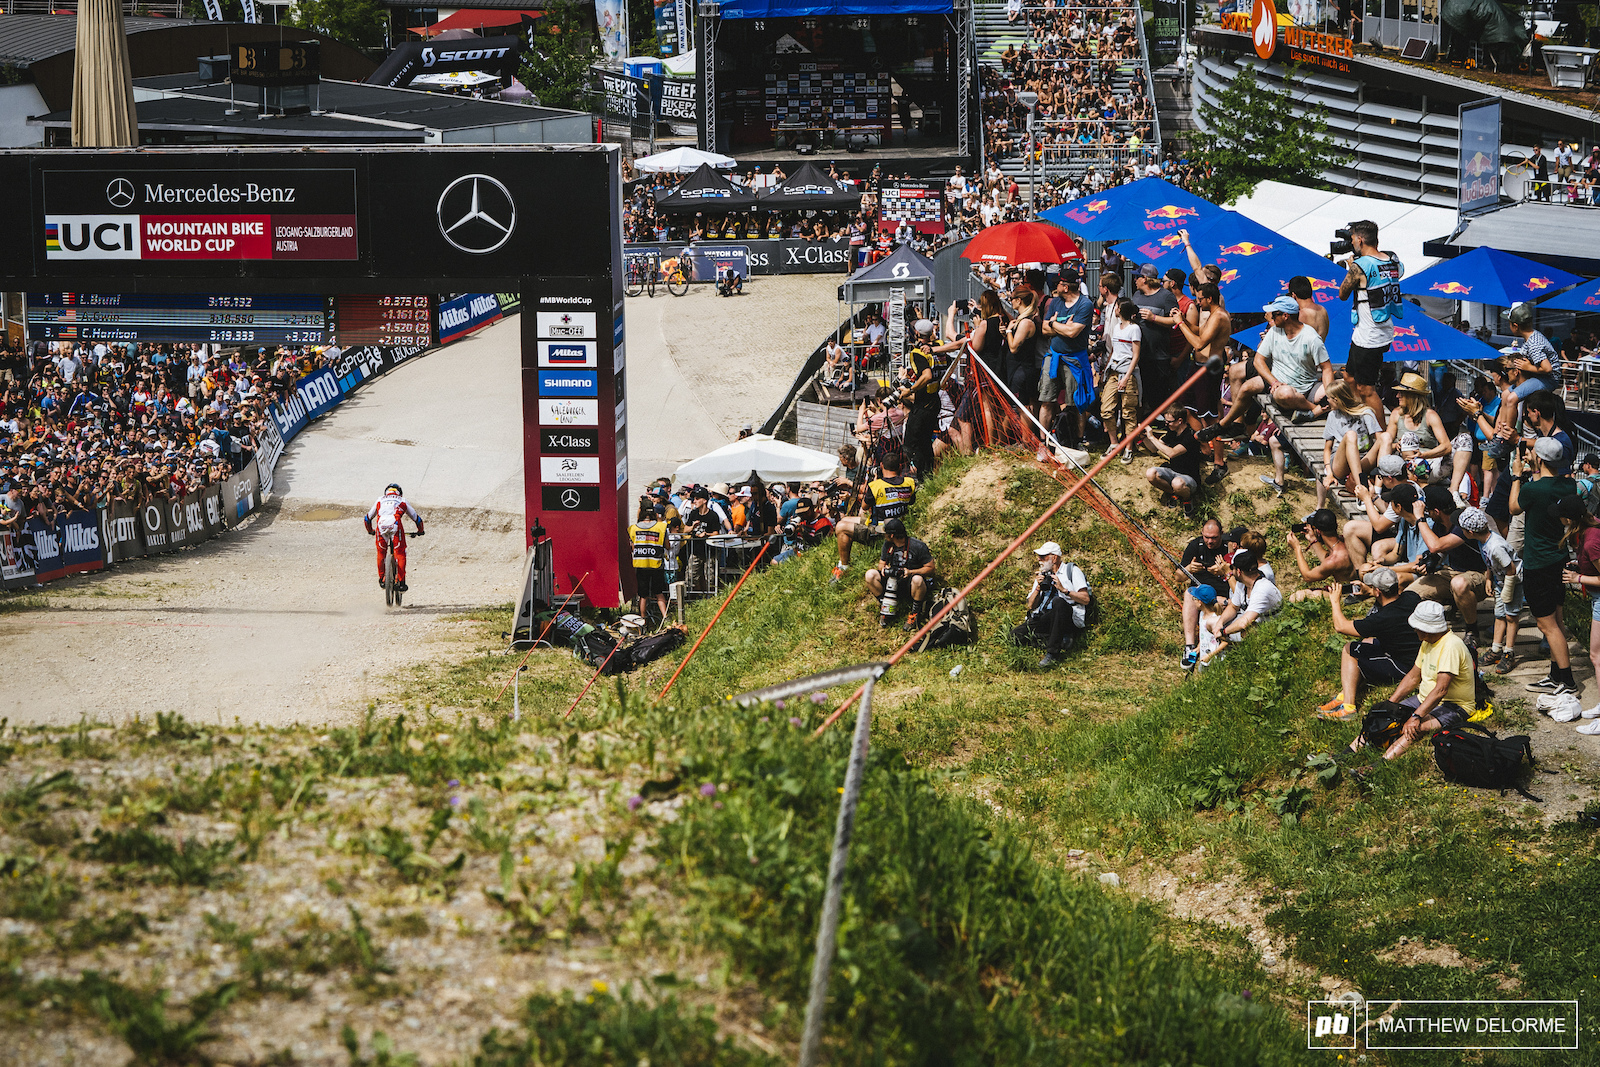 Aaron Gwin s luck has turned around a bit. 5th place today. Hopefully the momentum will carry on to Andorra.